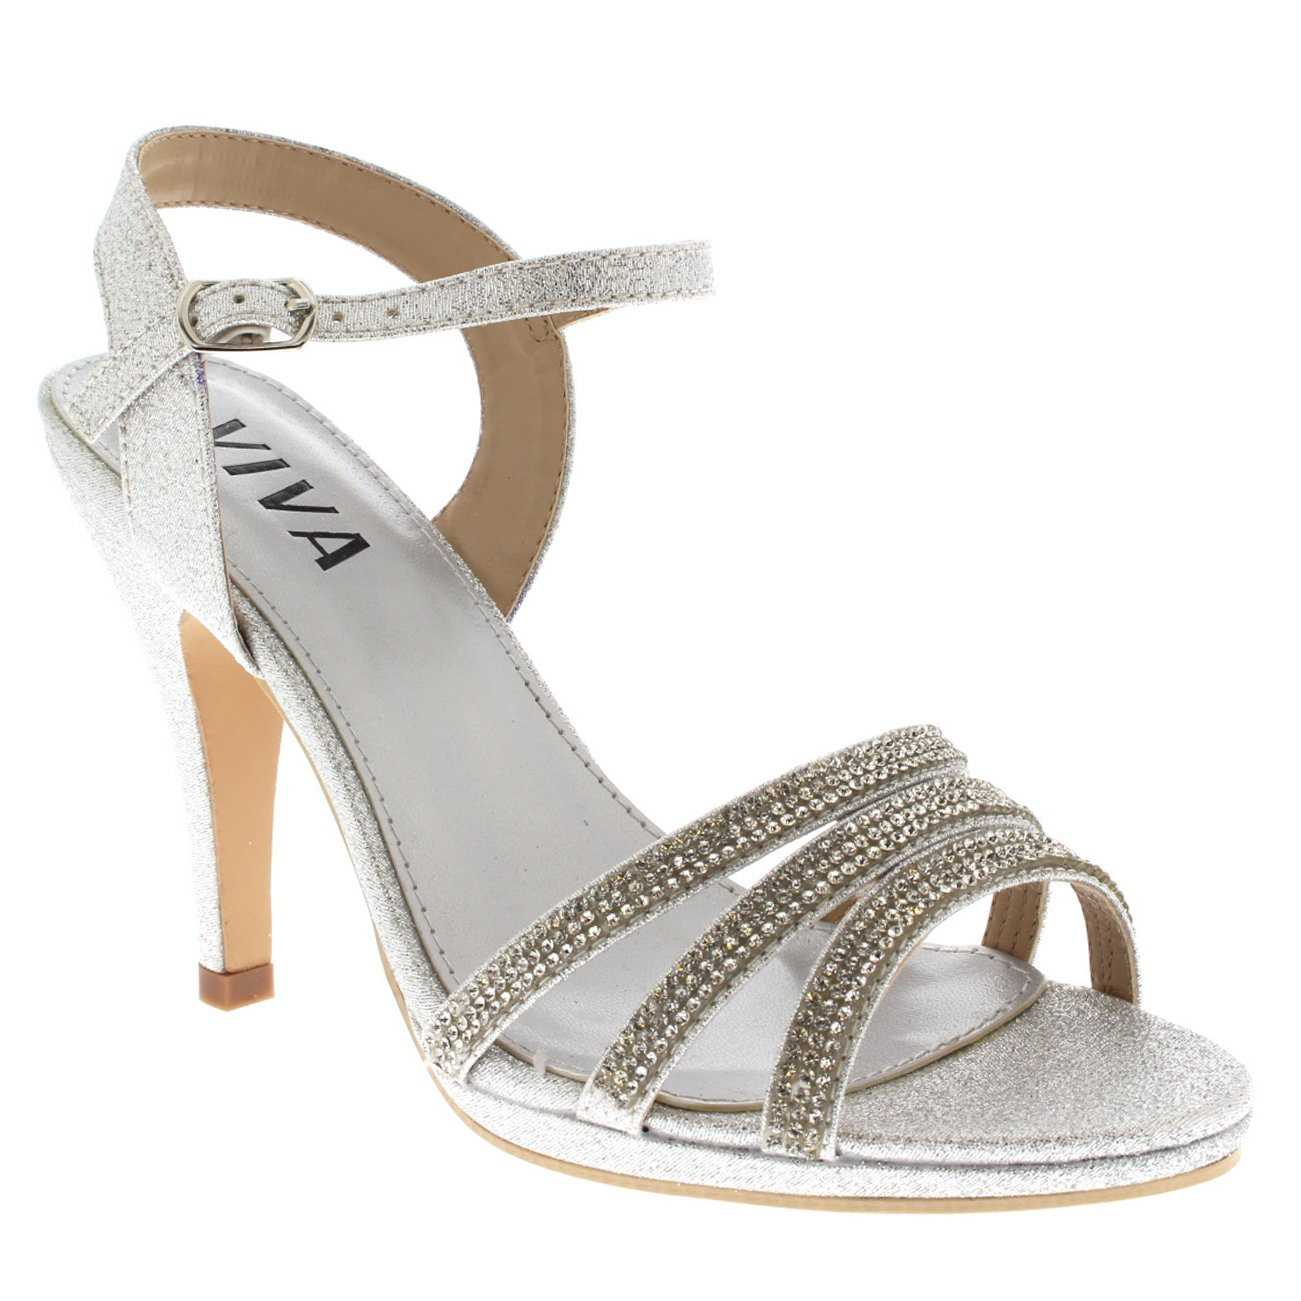 82448cc2d8184b Viva Womens Diamante Mid Heel Ankle Strap Wedding Party Evening Party  Sandals Shoes  Amazon.co.uk  Shoes   Bags